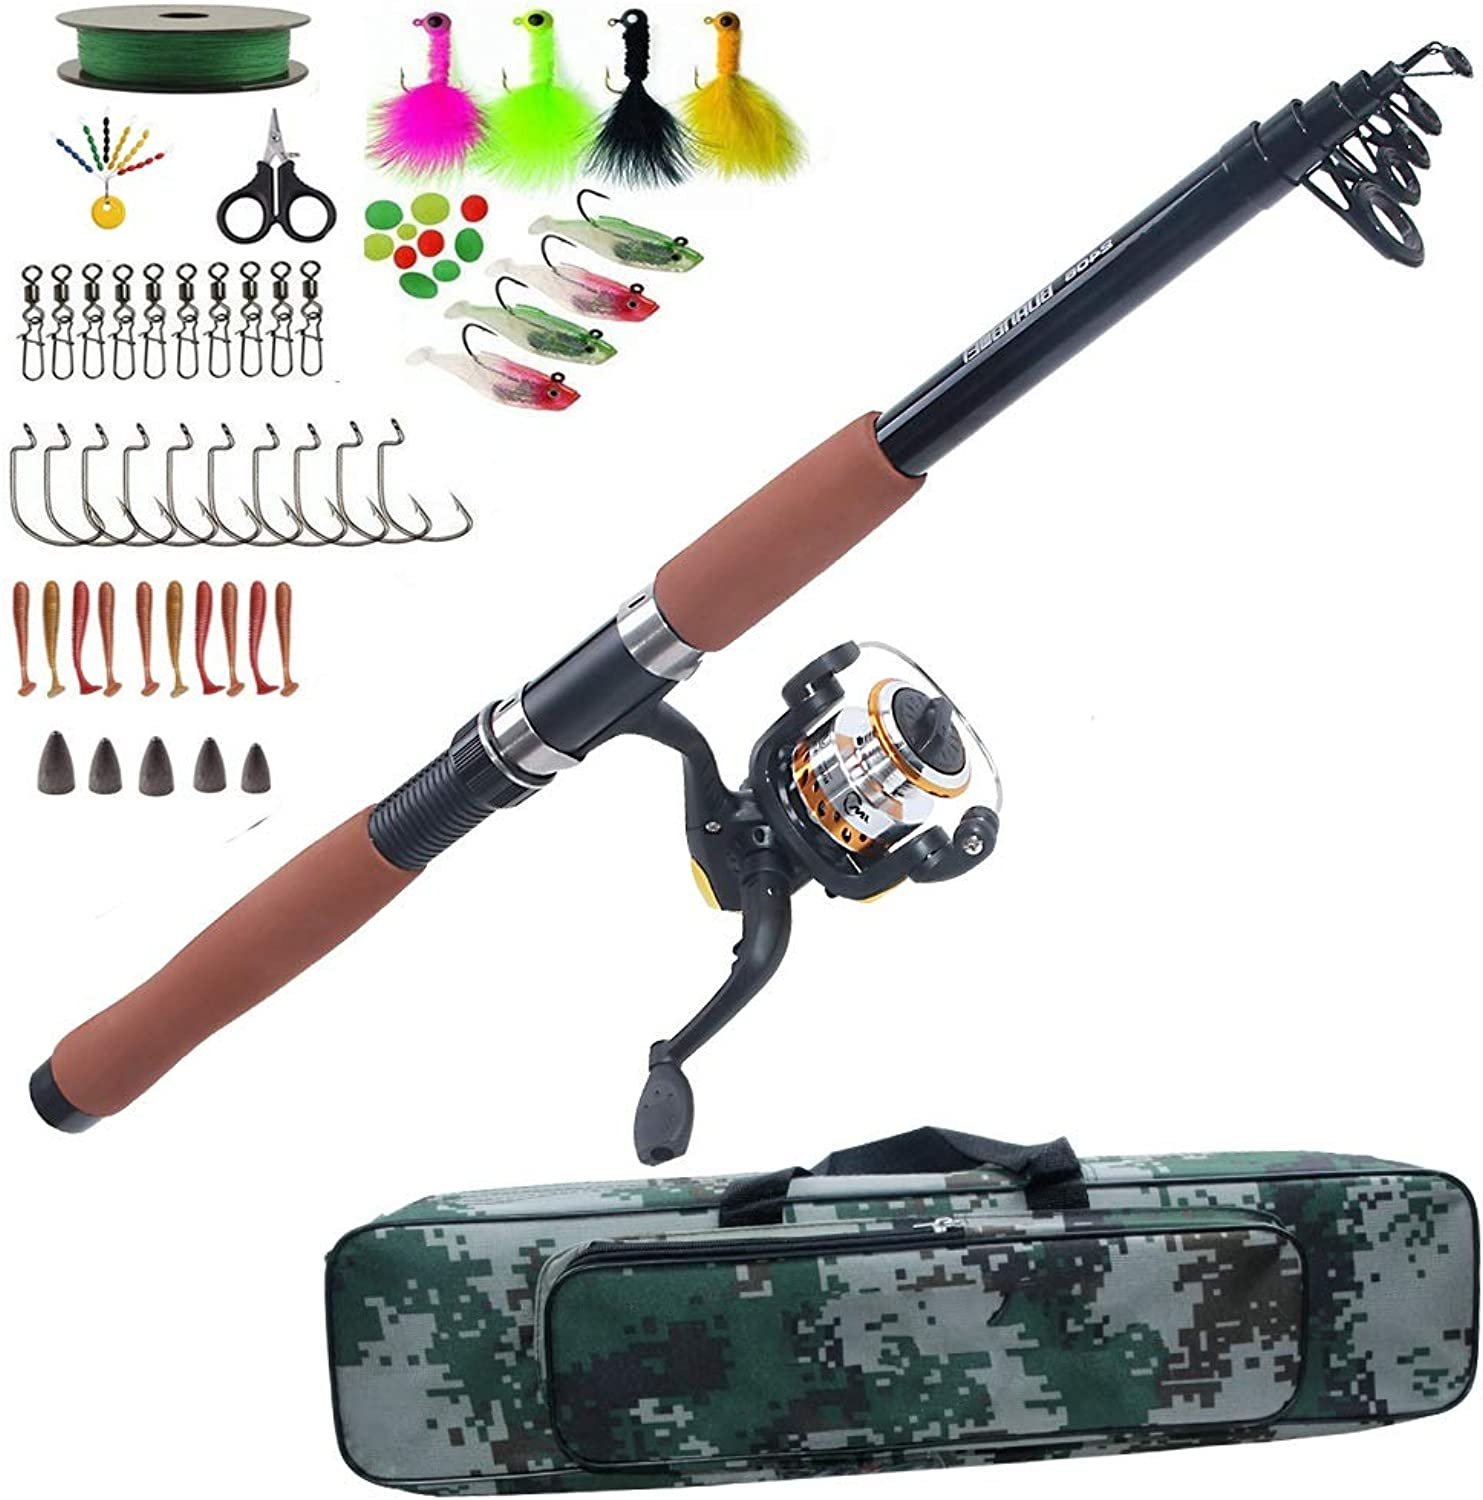 LMEI-QUN, Angelrute Combo Set Teleskop Sea Spinning Rute Reel Bag Kit mit Angelkder Haken Texas Rig Kit Tackle Tools (Farbe   2.7m Rod Combo)